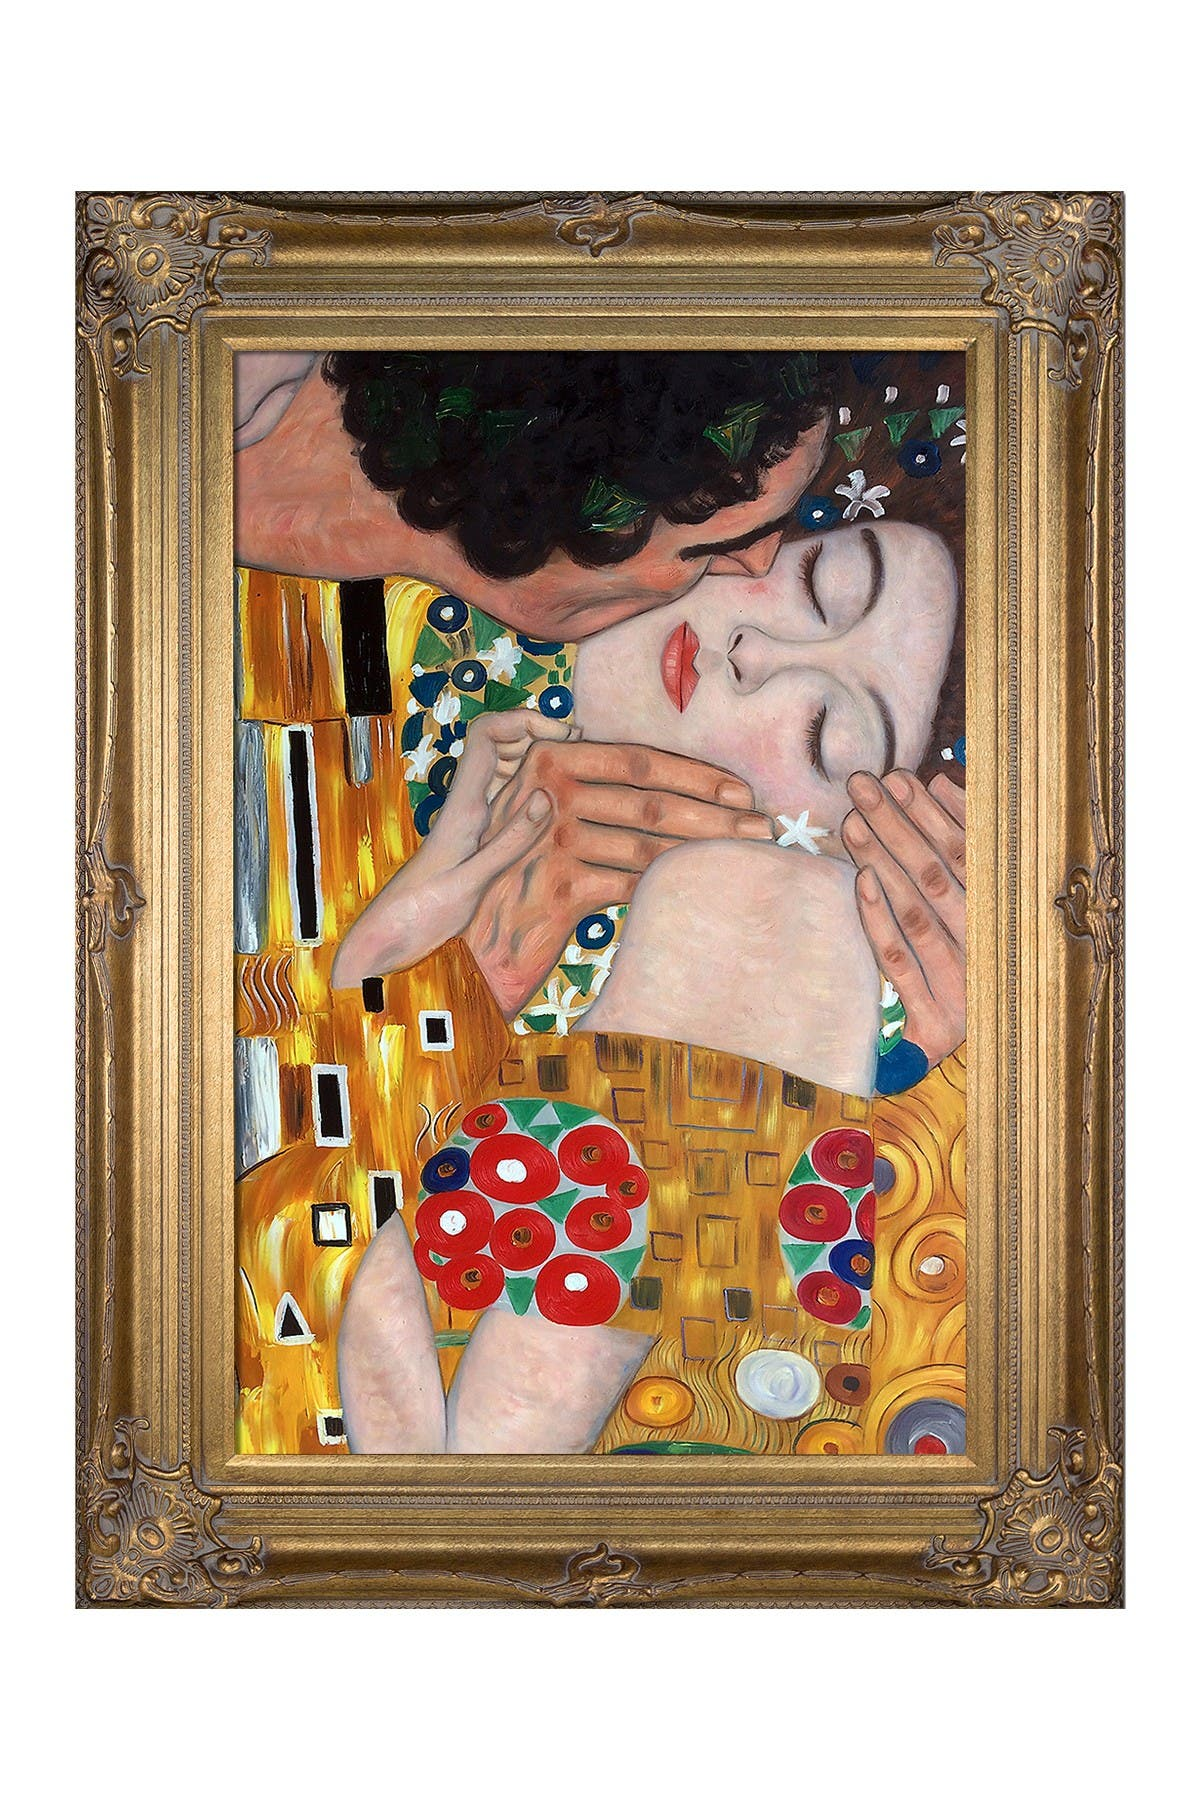 Image of Overstock Art The Kiss, Close-Up Framed Oil Reproduction of an Original Painting by Gustav Klimt